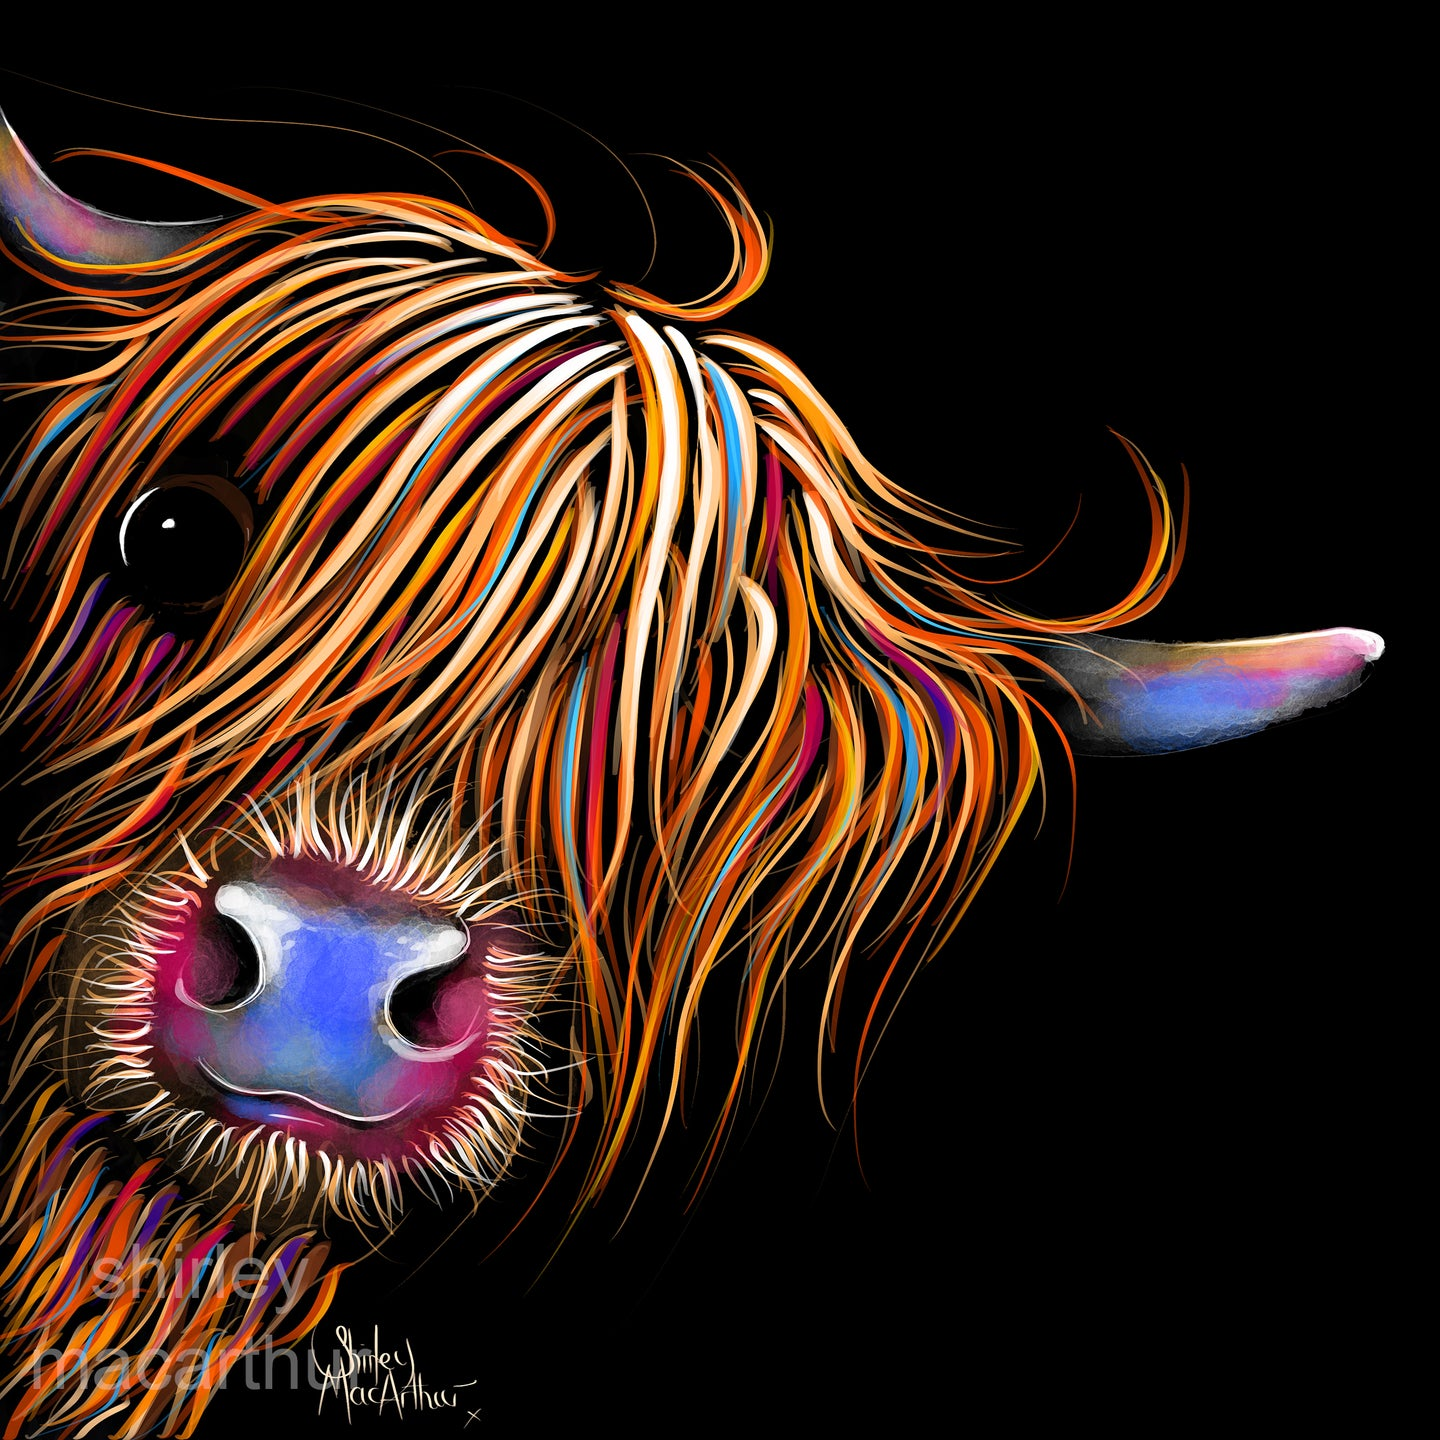 ' SuGaR LuMP oN BLaCK ' HiGHLaND CoW PRiNT, WaLL ART - BY SHiRLeY MacARTHuR